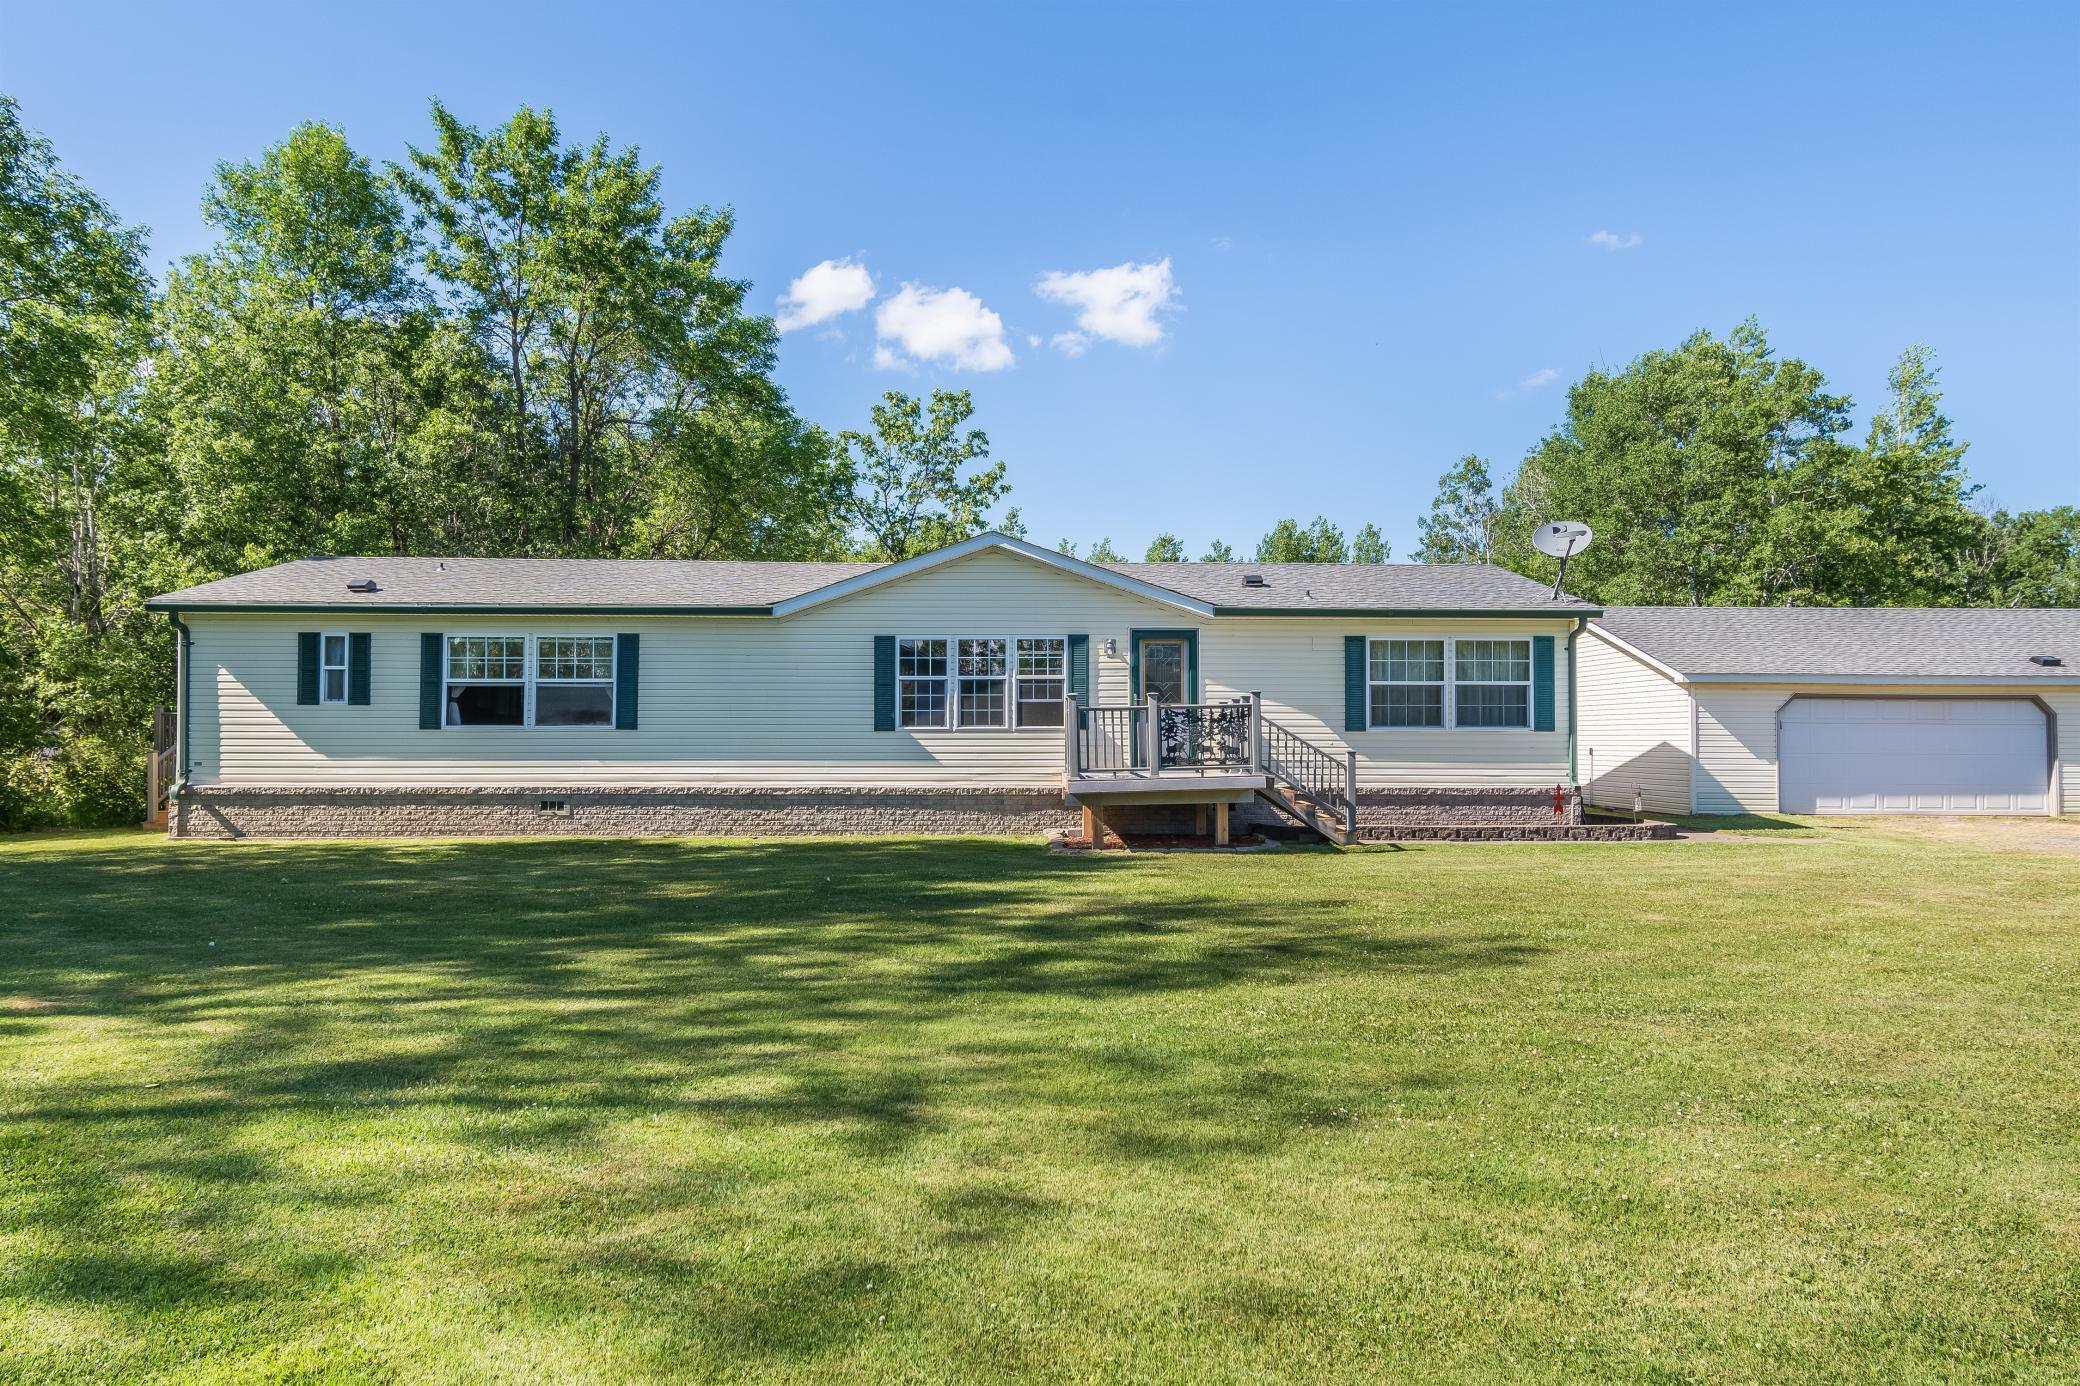 6471 E County Road C Property Photo - Parkland Twp, WI real estate listing